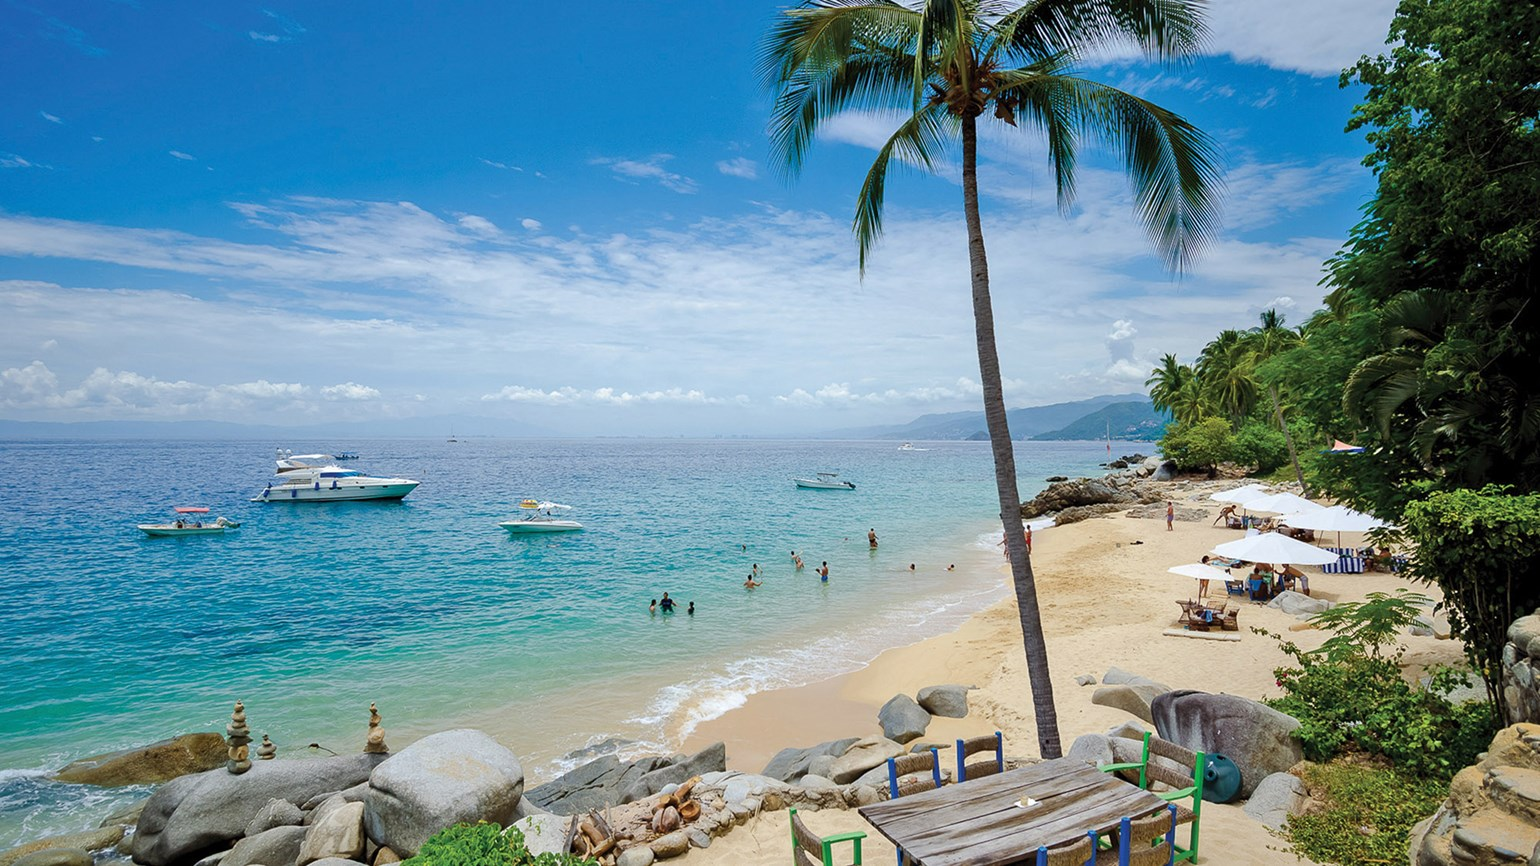 Four beach spots for those seeking seclusion